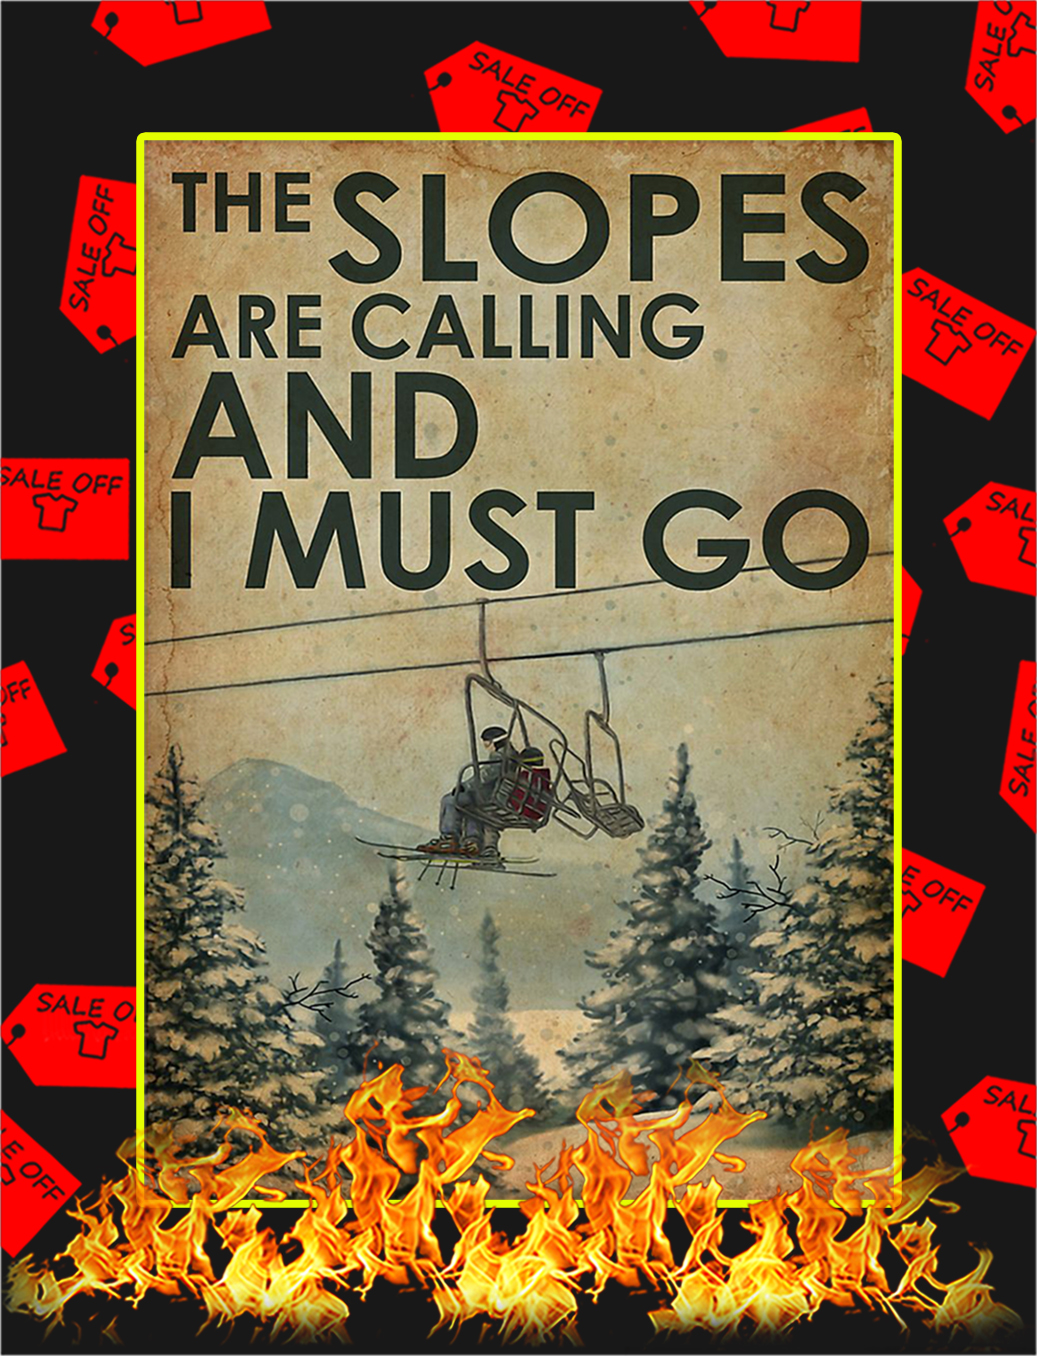 The Slopes Are Calling And I Must Go Poster - A1